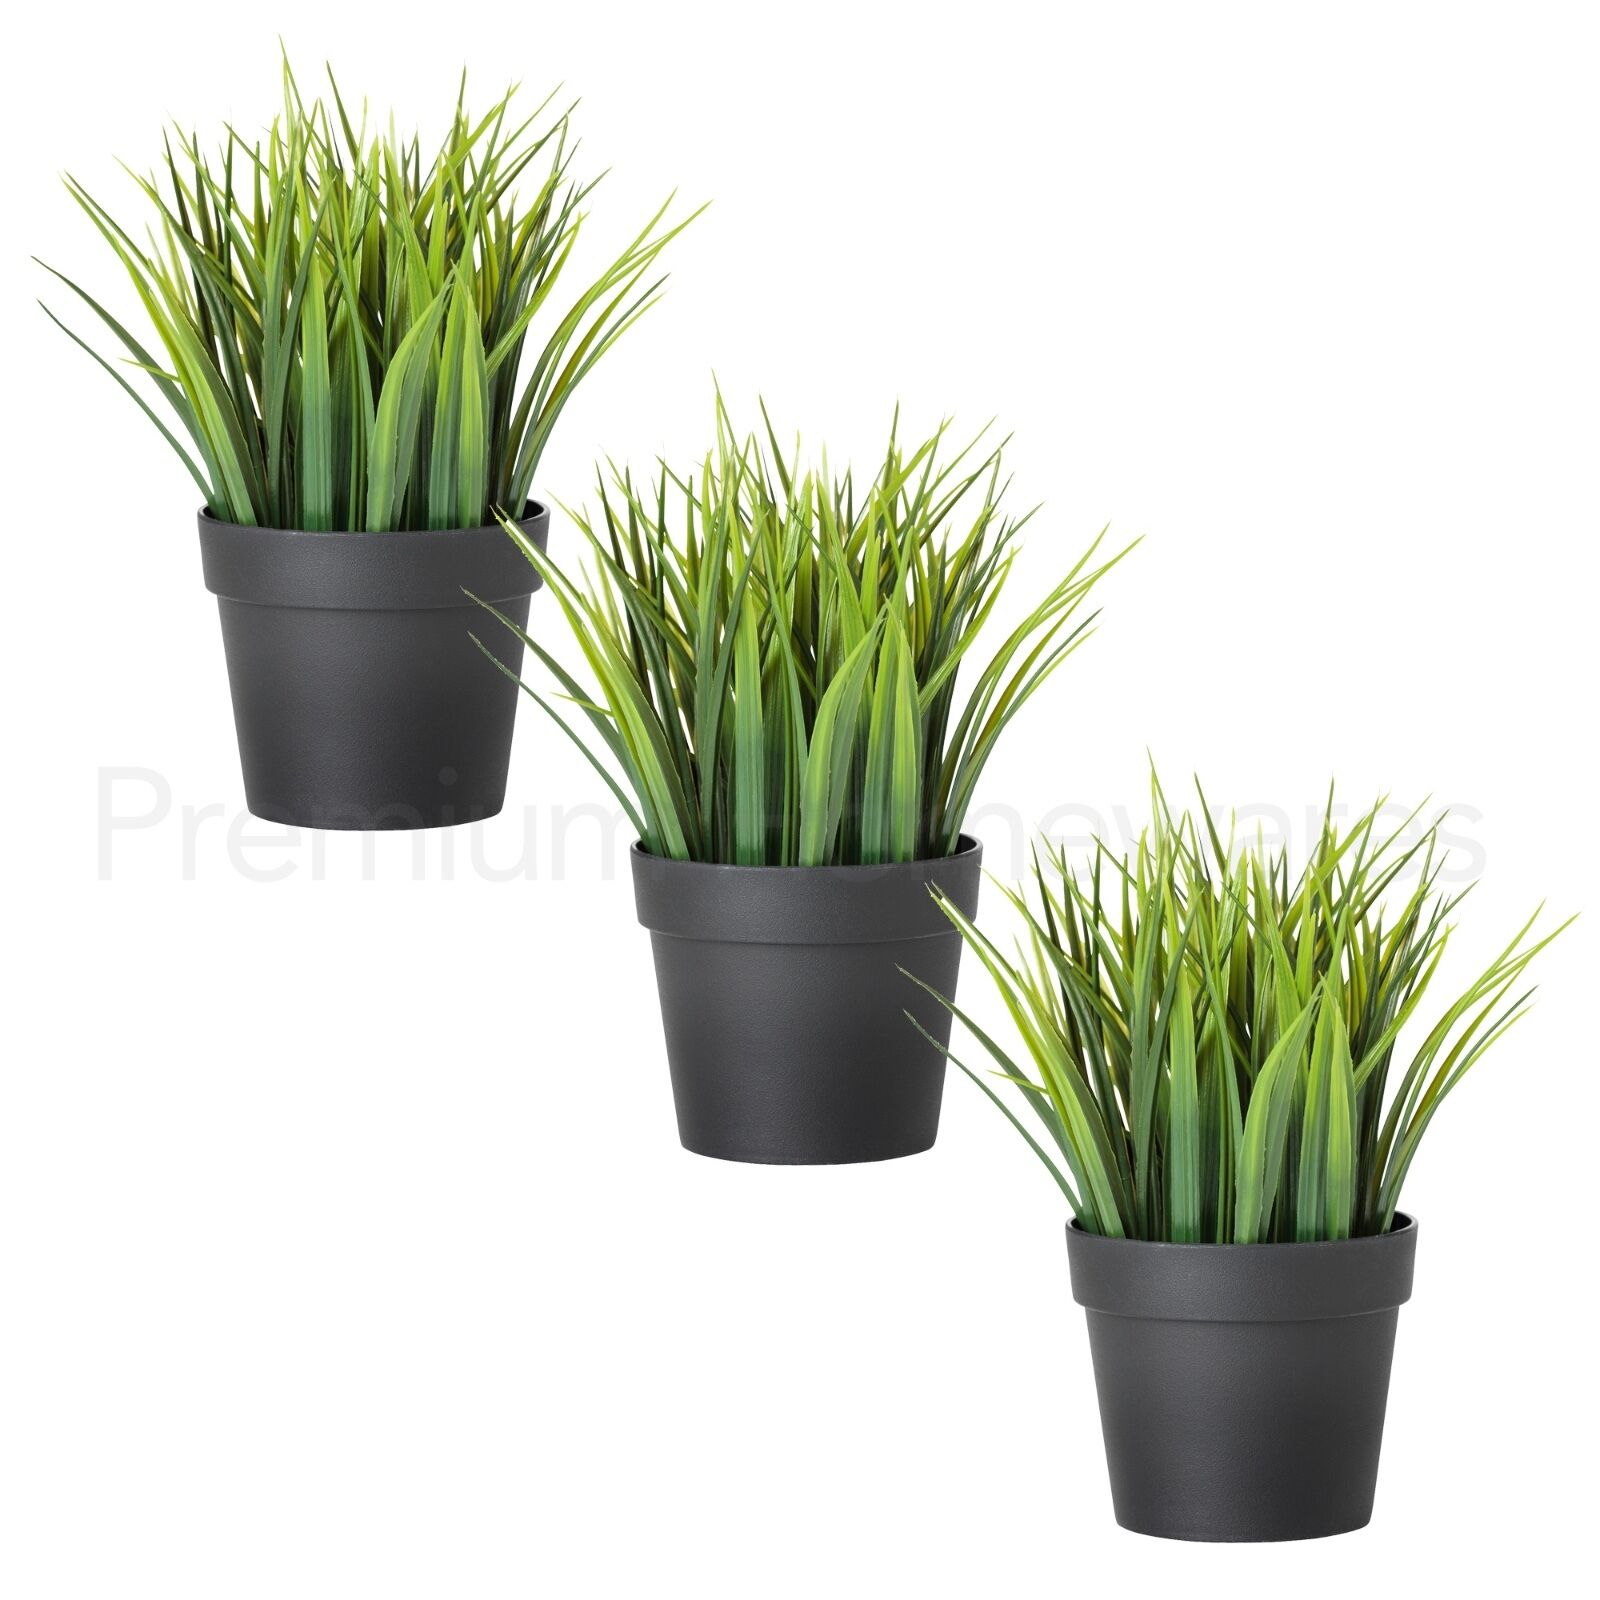 3 x ikea fejka artificial green grass plants in pots 20cm for Ikea plantes